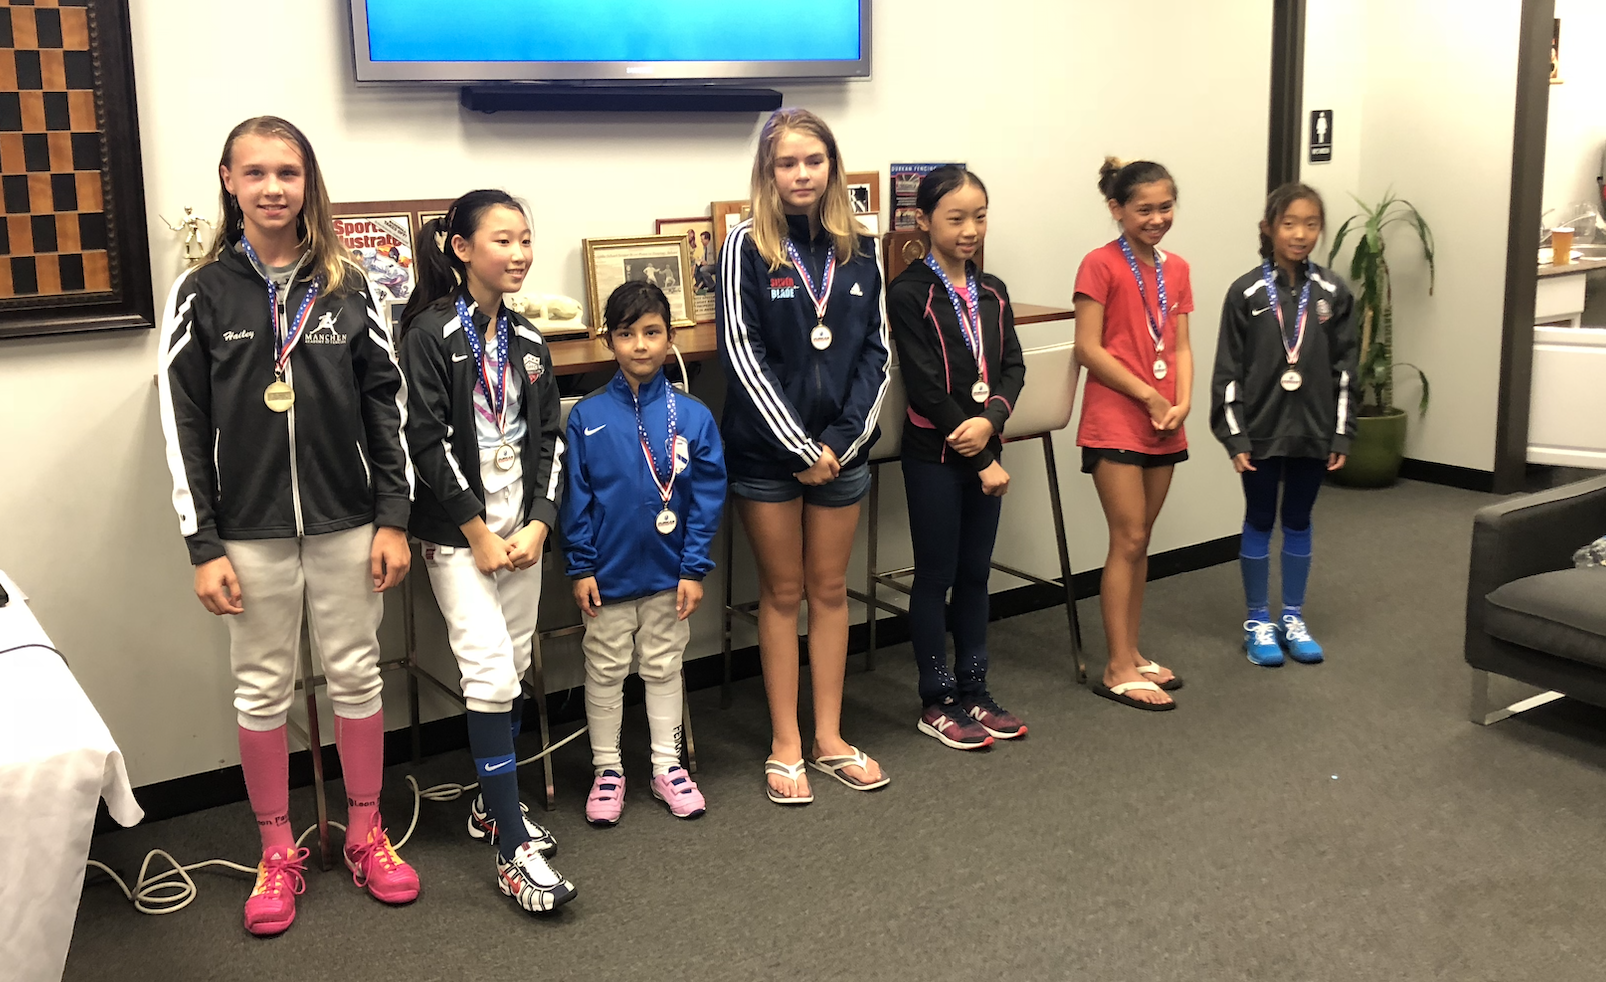 Durkan Fencing Academy RYC   Emily Cascone 3rd place Y12 Womens Foil  August 18th 2019